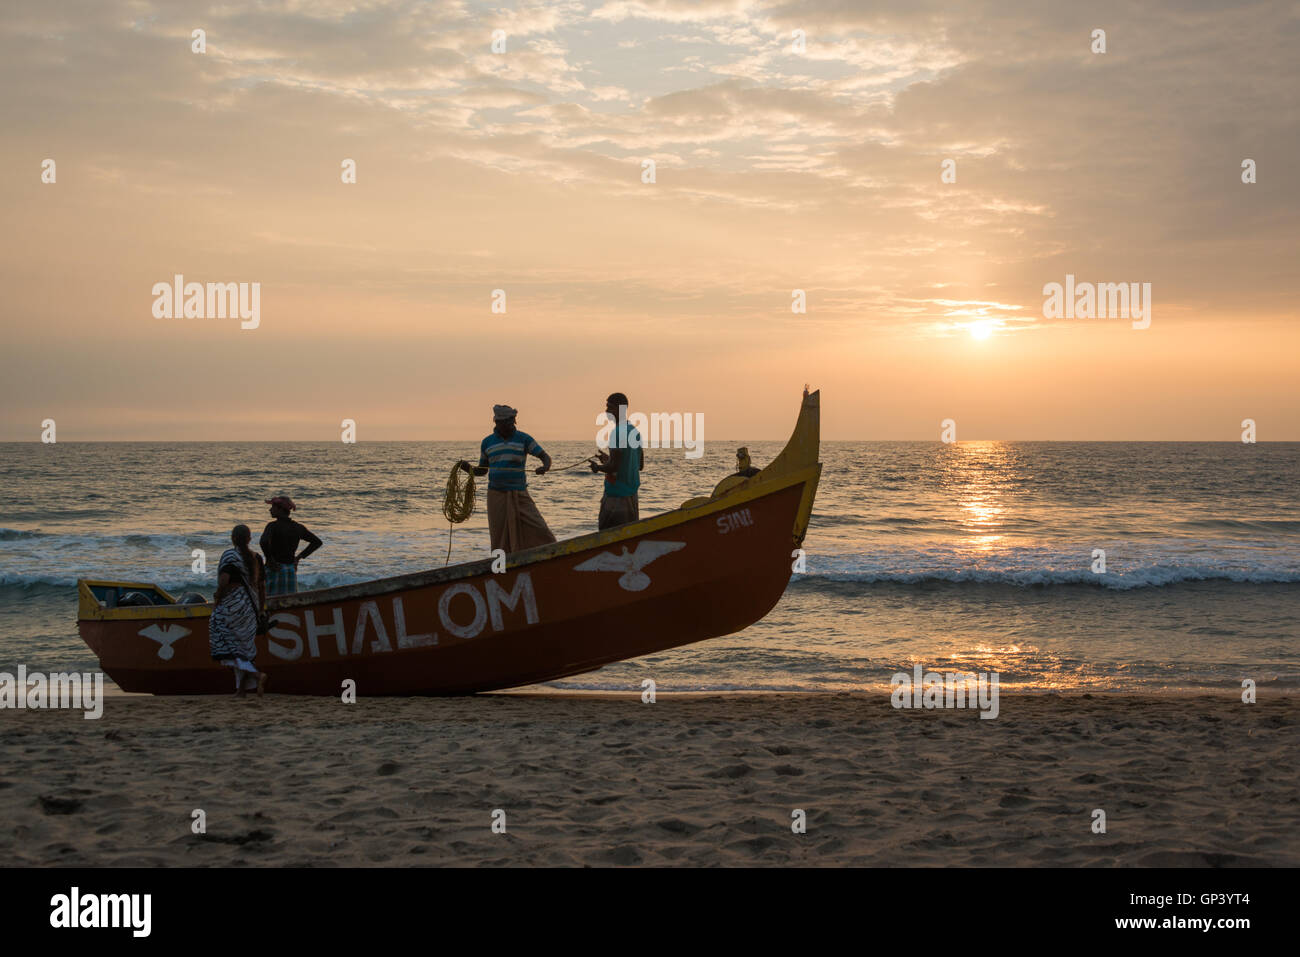 Fishermen preparing their nets and boat on Varkala beach, Kerala, India - Stock Image